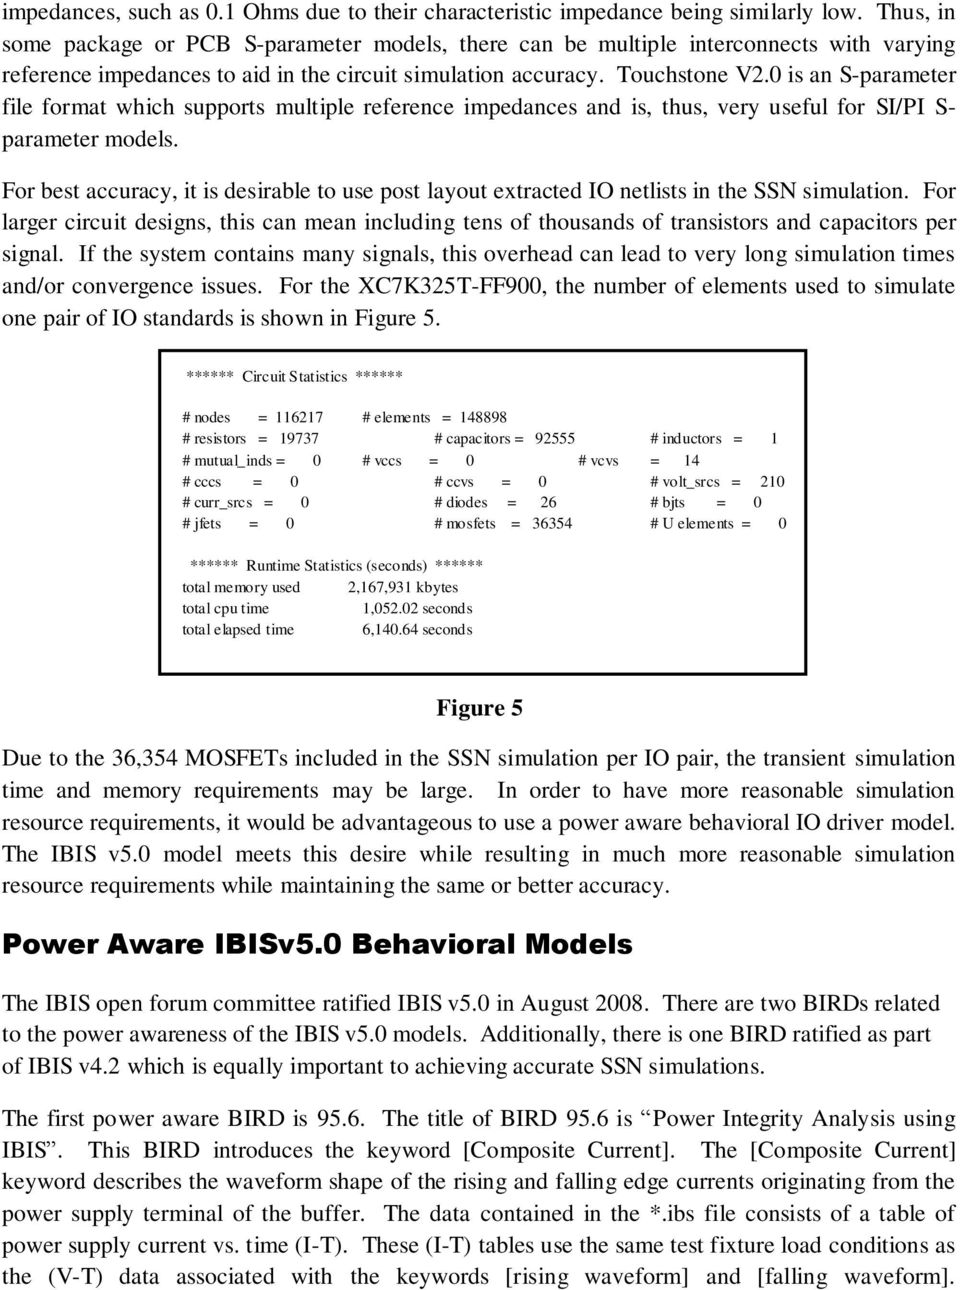 Using Power Aware Ibis V50 Behavioral Io Models To Simulate Capacitor Signal Led Delay Minicircuit Electrical Engineering 0 Is An S Parameter File Format Which Supports Multiple Reference Impedances And